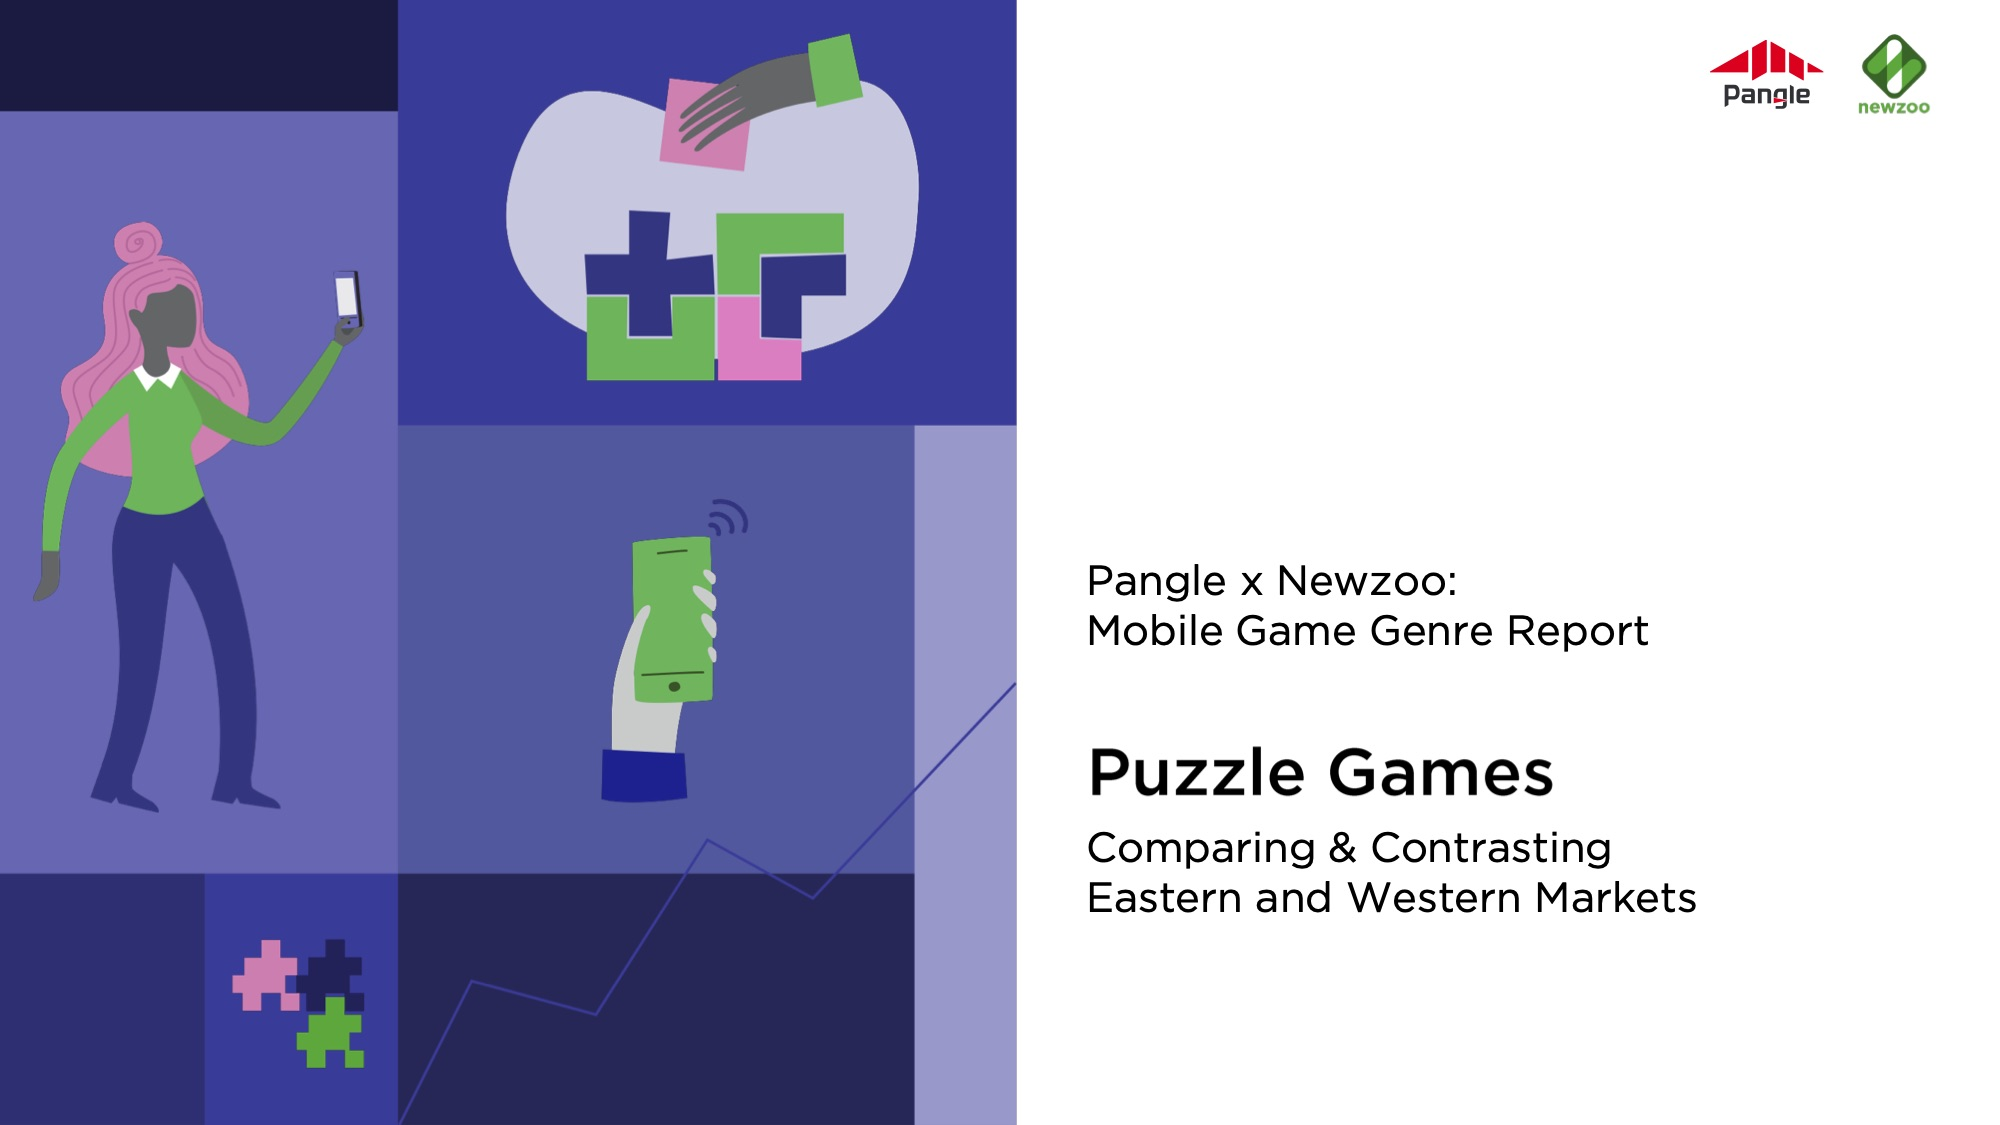 Puzzle Game Report: Popularity, Revenues & Opportunities Across East and West